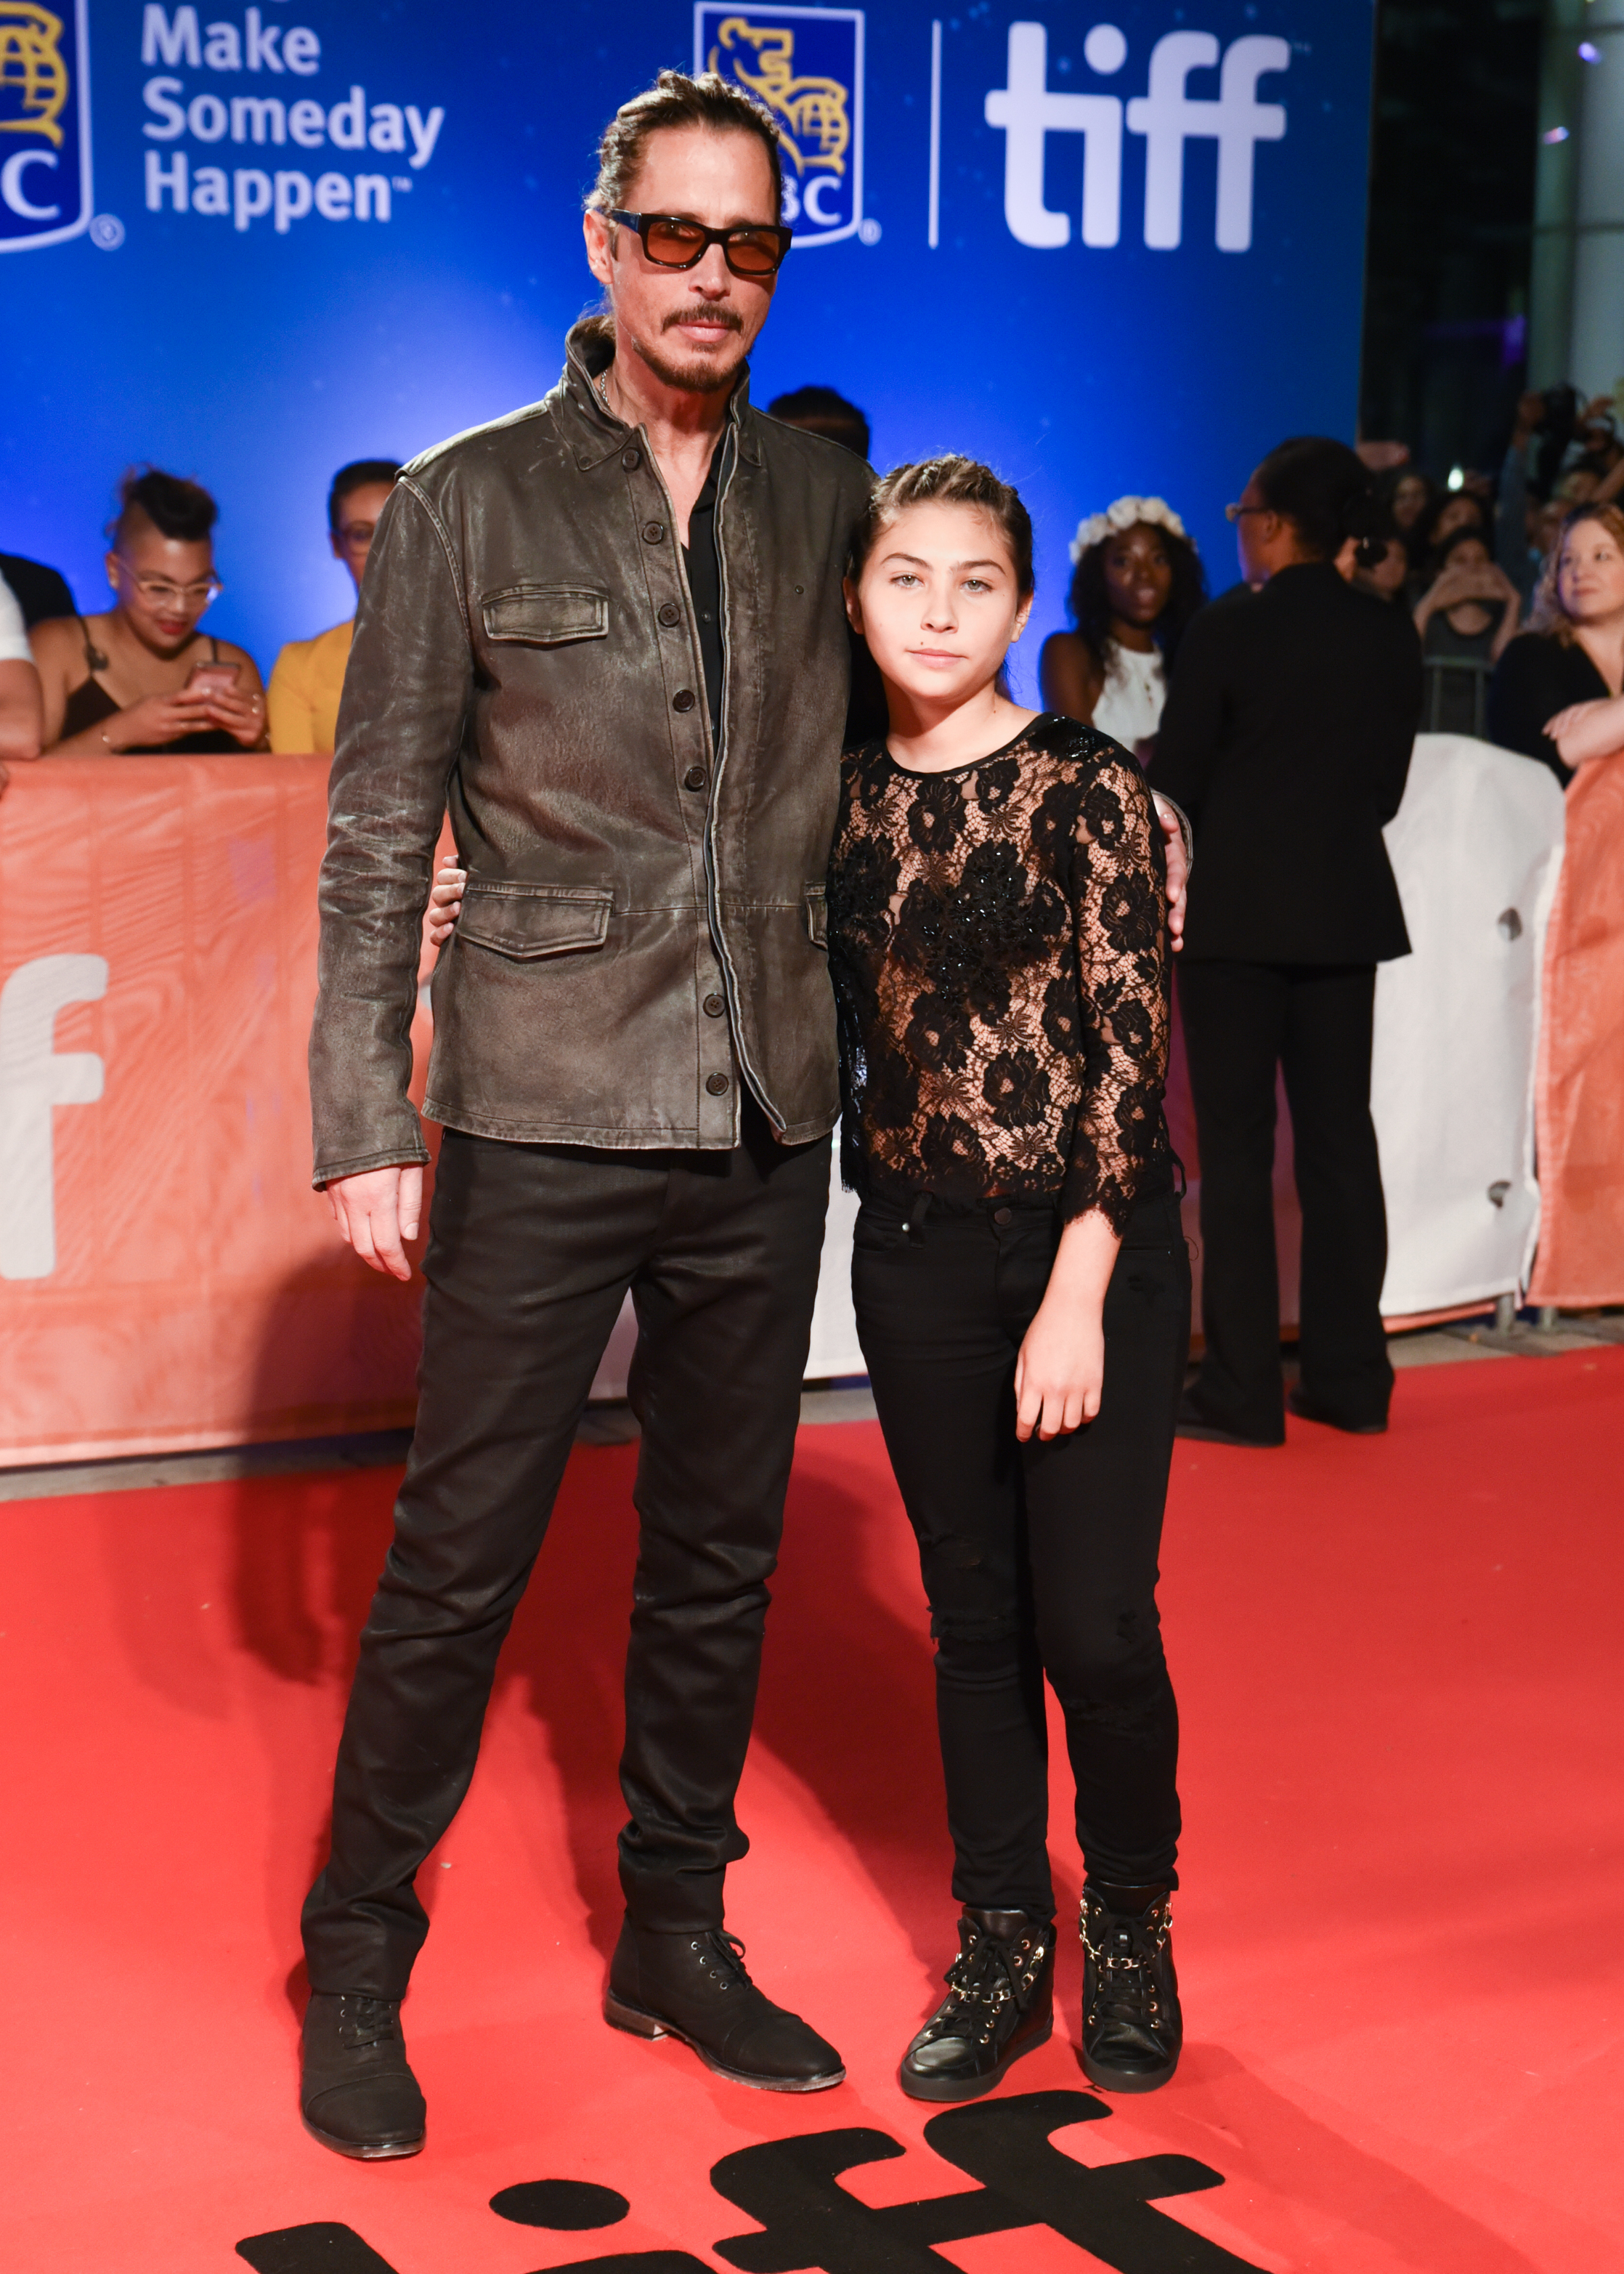 41st Toronto International Film Festival - 'The Promise' - Premiere                                    Featuring: Chris Cornell                  Where: Toronto, Canada                  When: 11 Sep 2016                  Credit: Jaime Espinoza/WENN.com